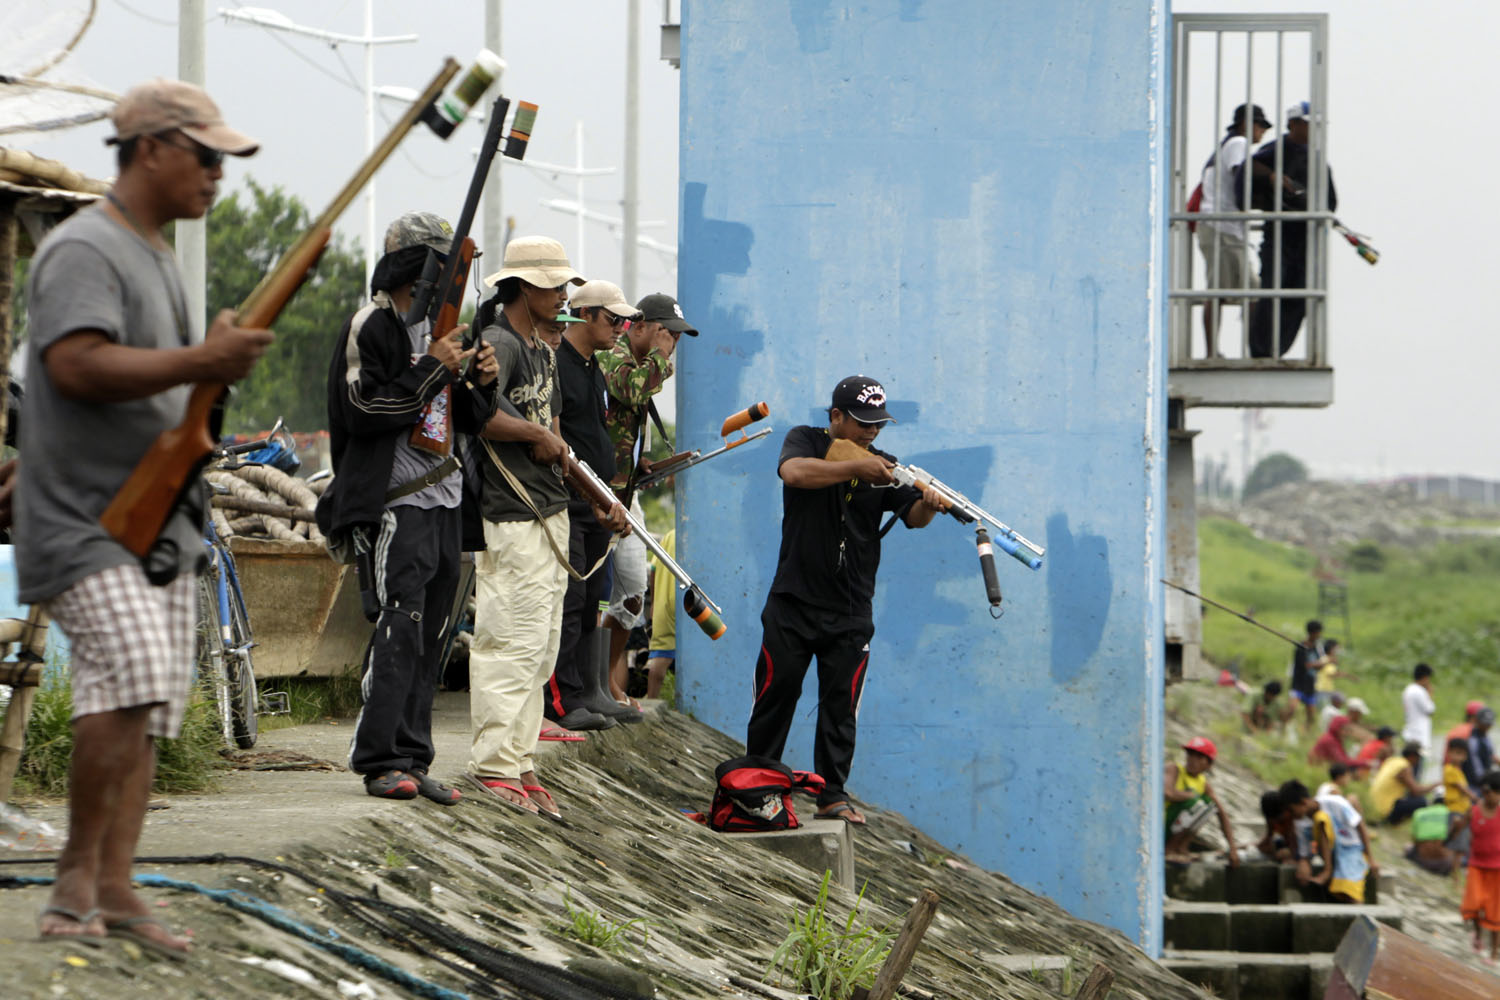 Sept. 24, 2013. Filipino riflemen shoot fish at a flood control facility in Taguig city, south of Manila, Philippines.